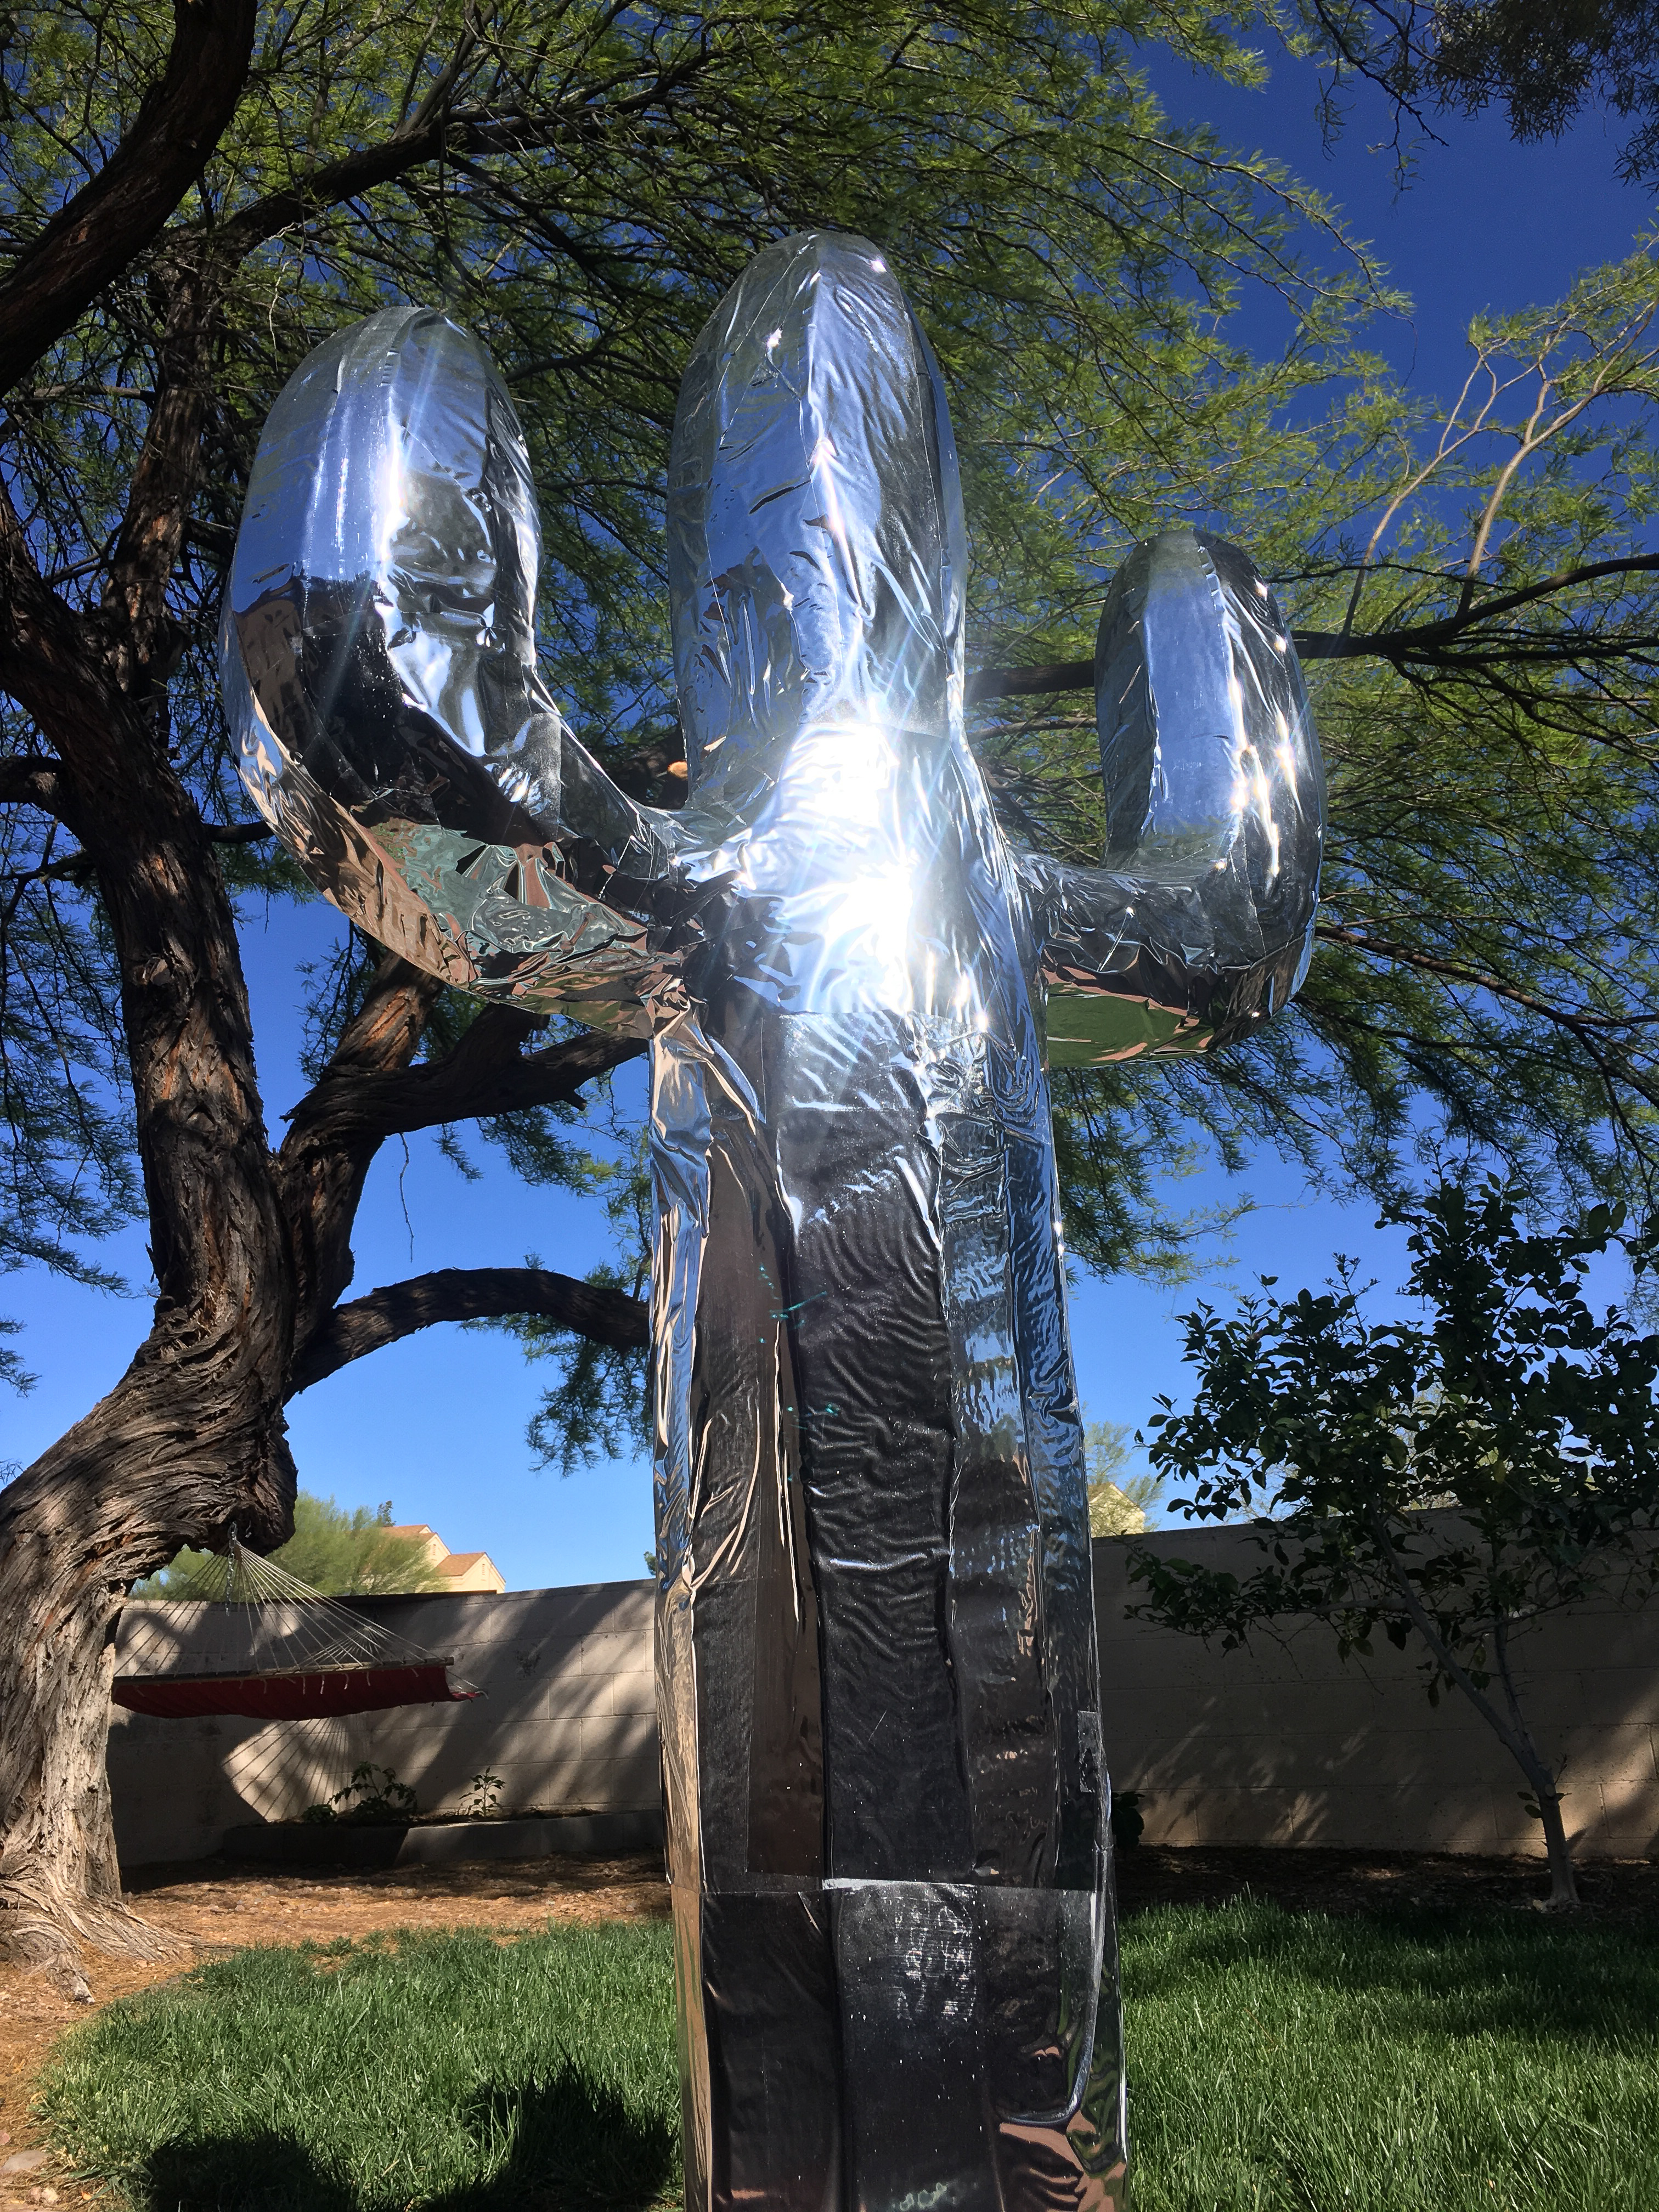 A finished reflective coat on the cactus sculpture in direct sunlight